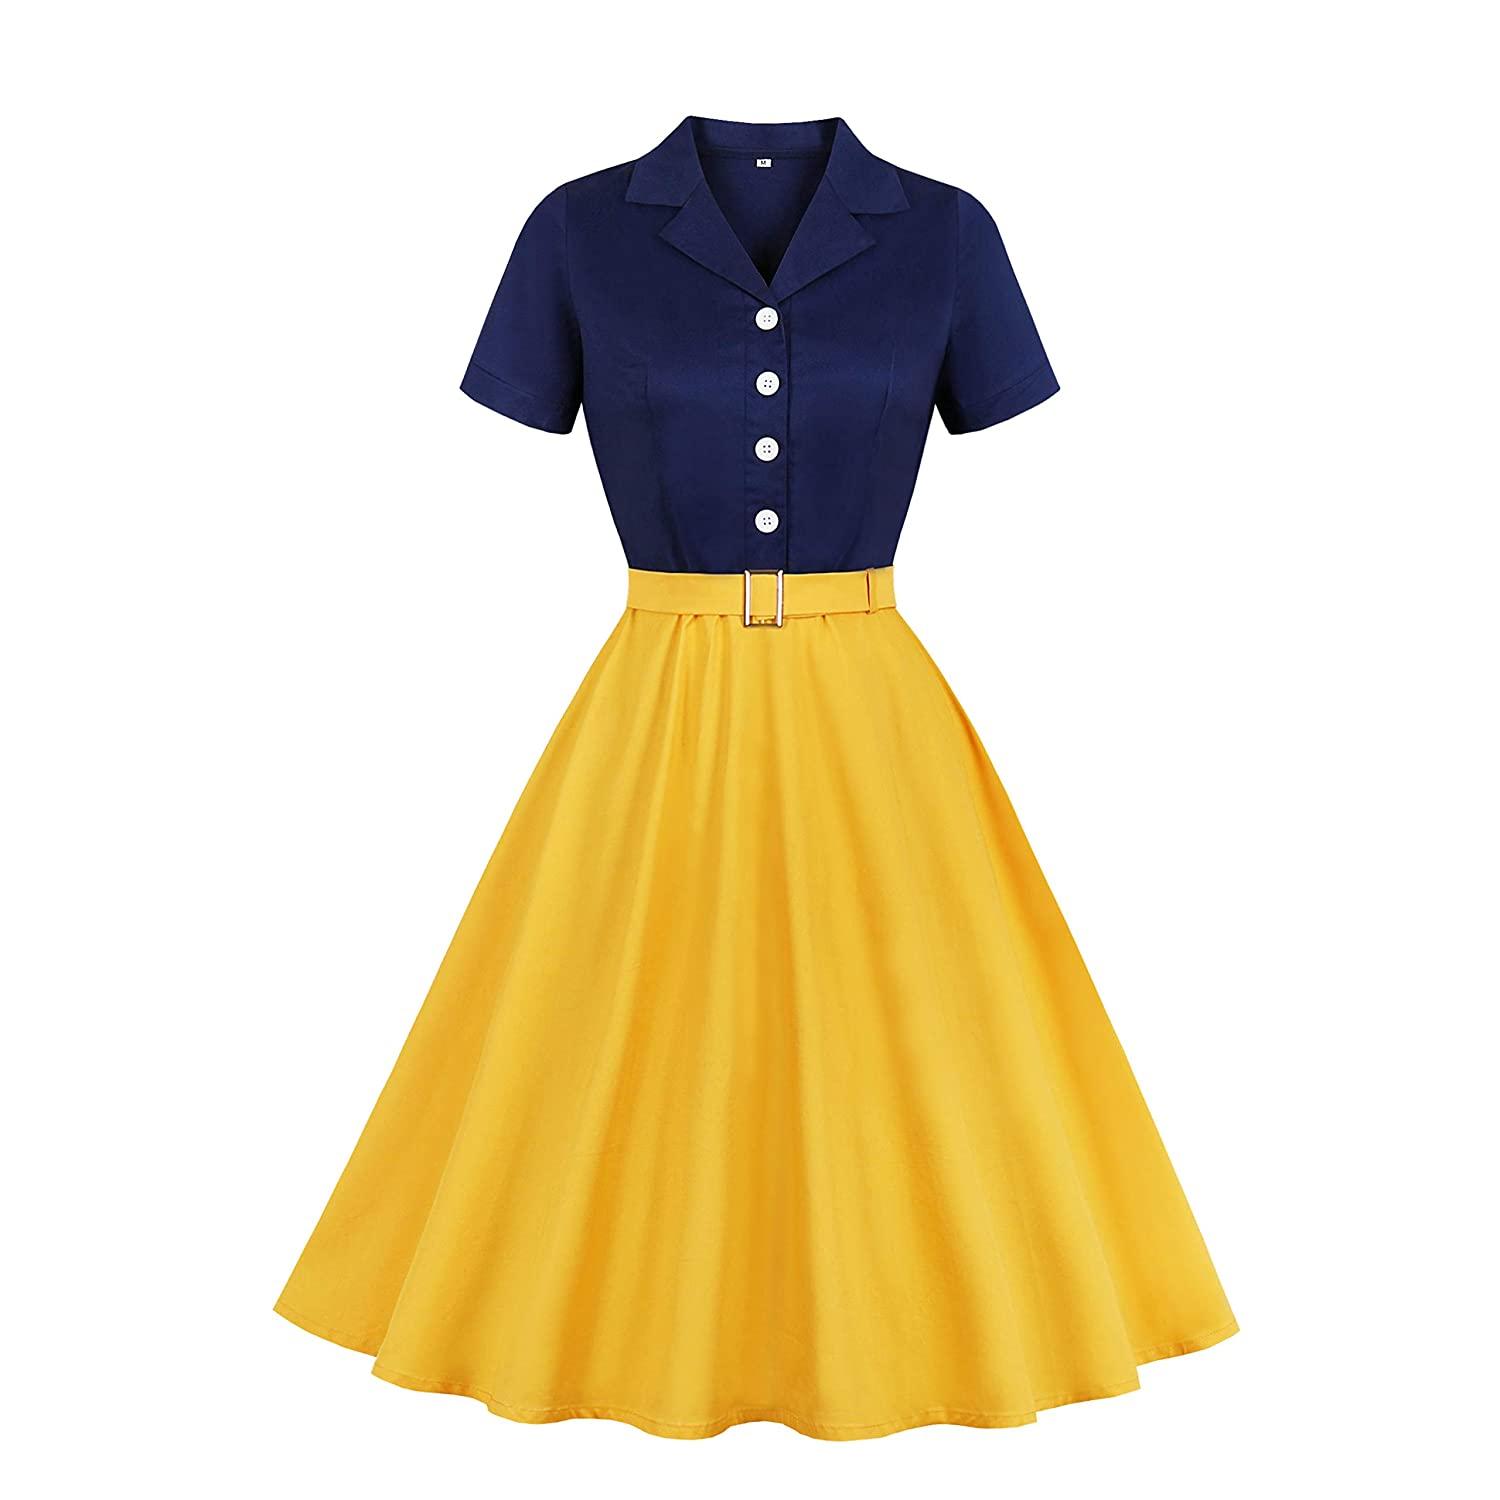 Vintage 50s Dresses: Best 1950s Dress Styles Wellwits Womens Sailor Navy Yellow Halloween Princess Vintage Shirt Dress $22.98 AT vintagedancer.com